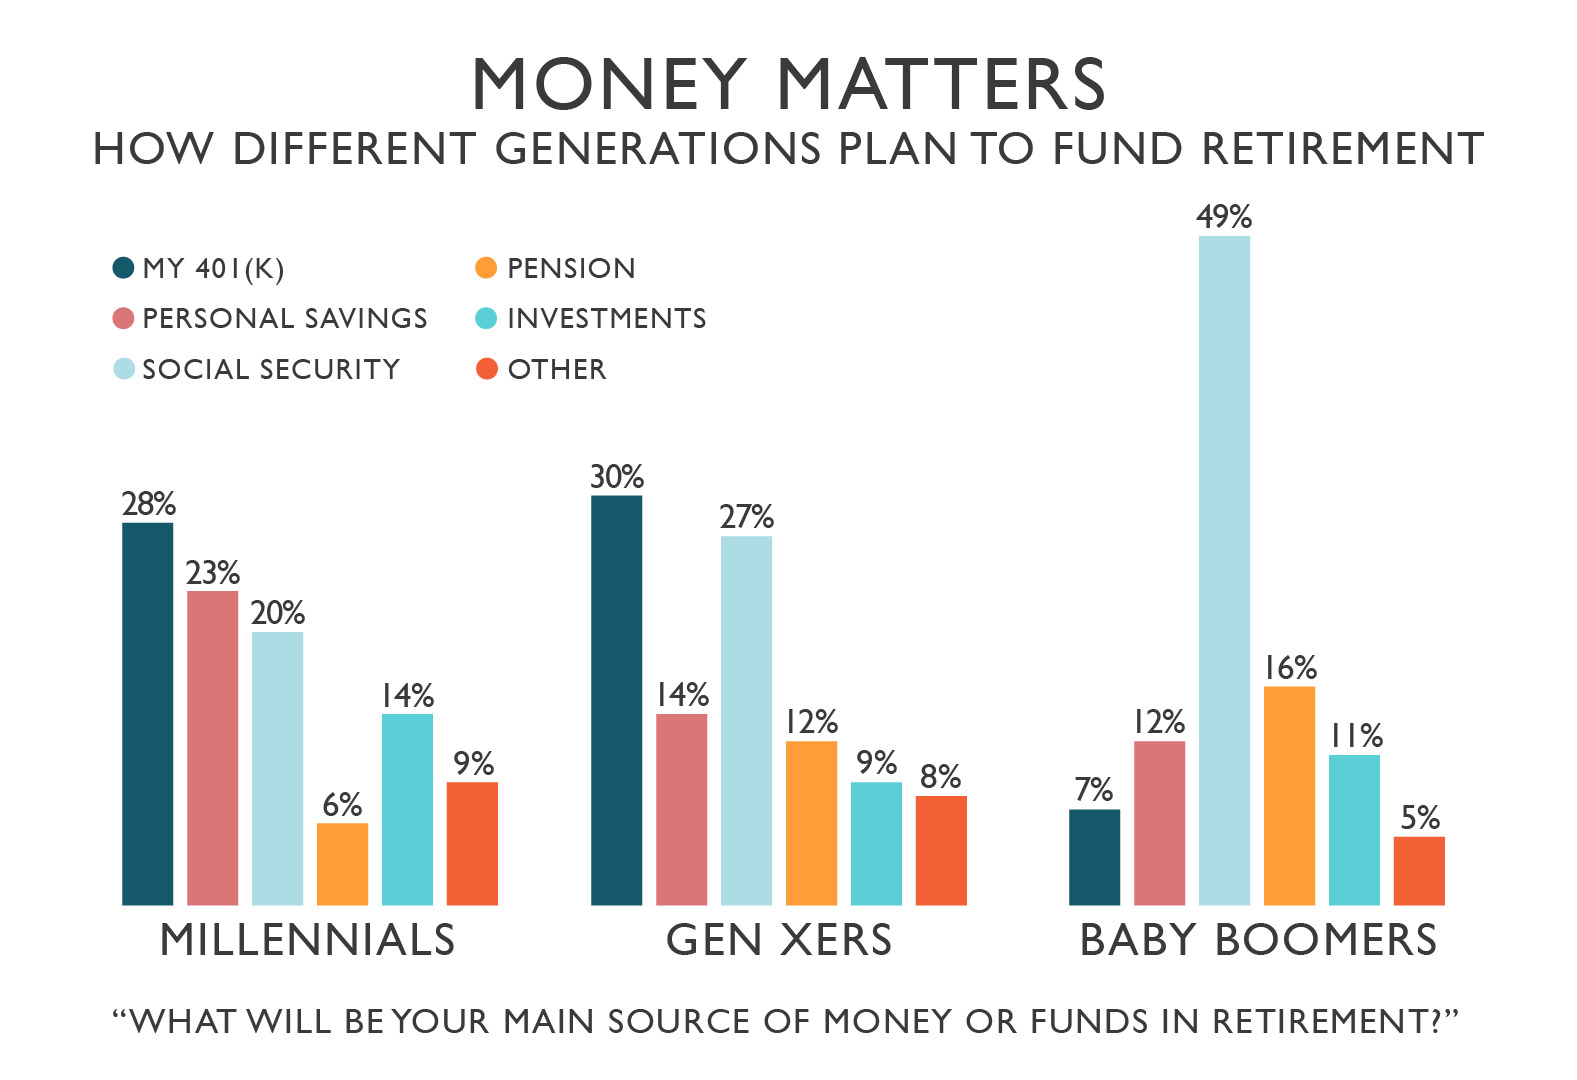 How different generations plan to fund retirement